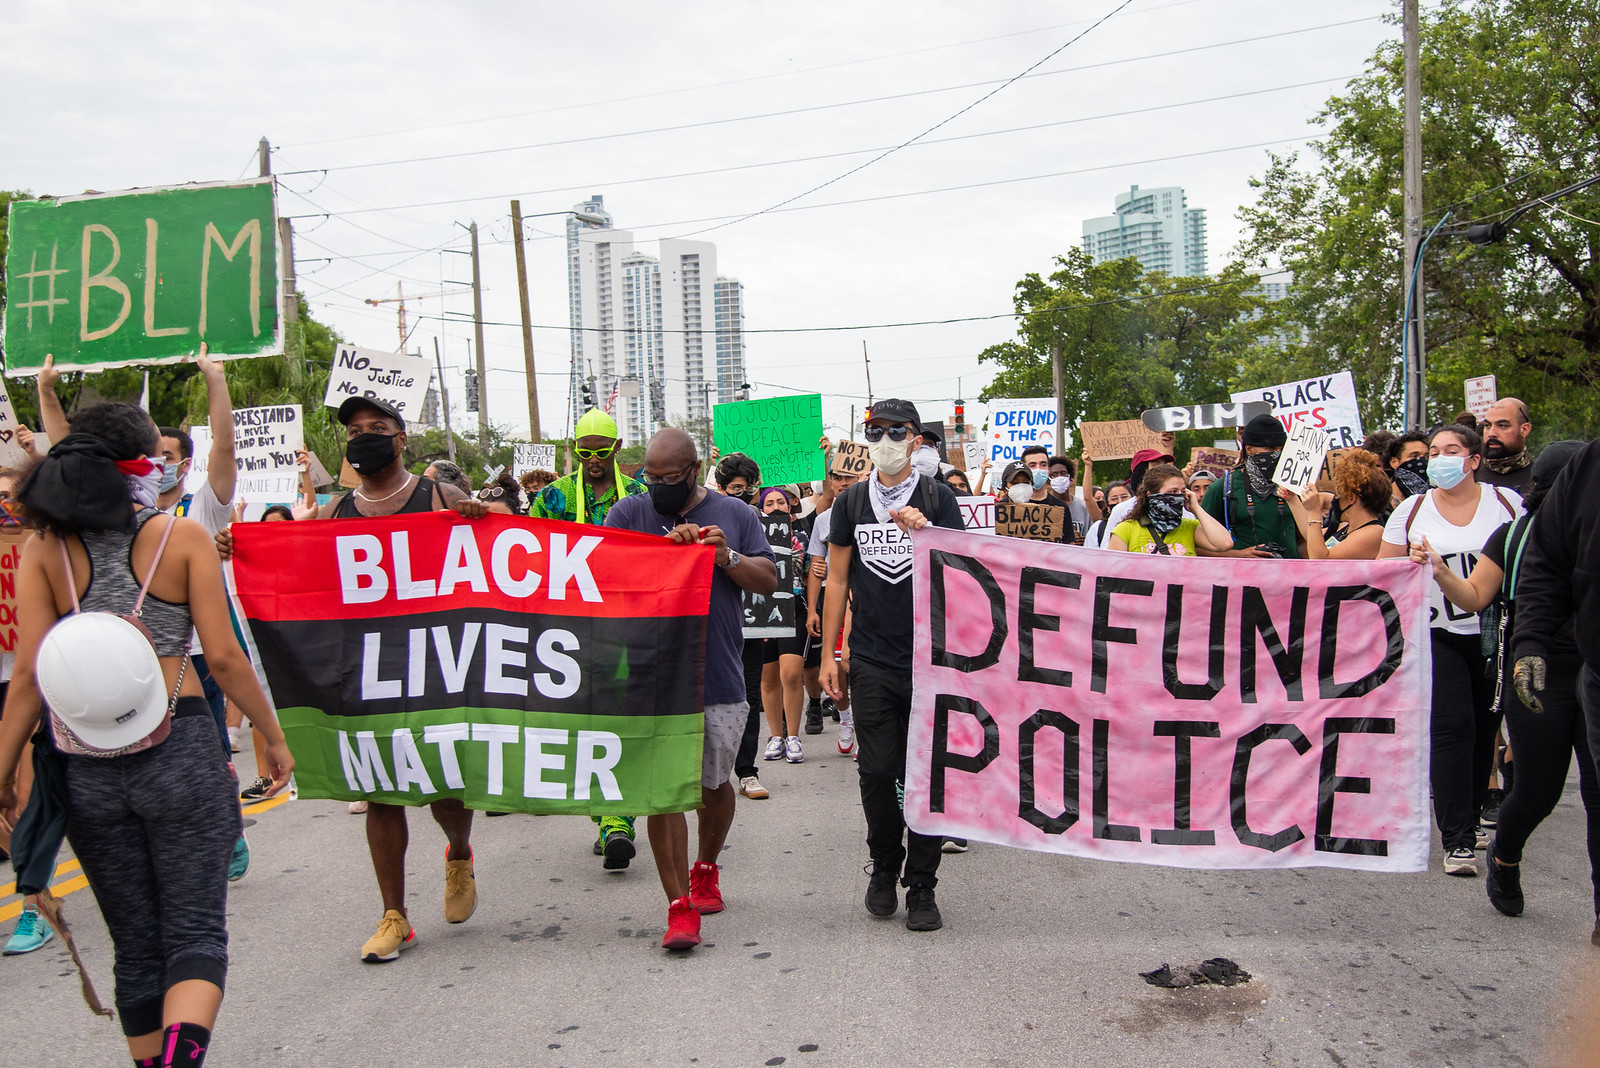 Defund the Police - Top 3 Pros and Cons - ProCon.org